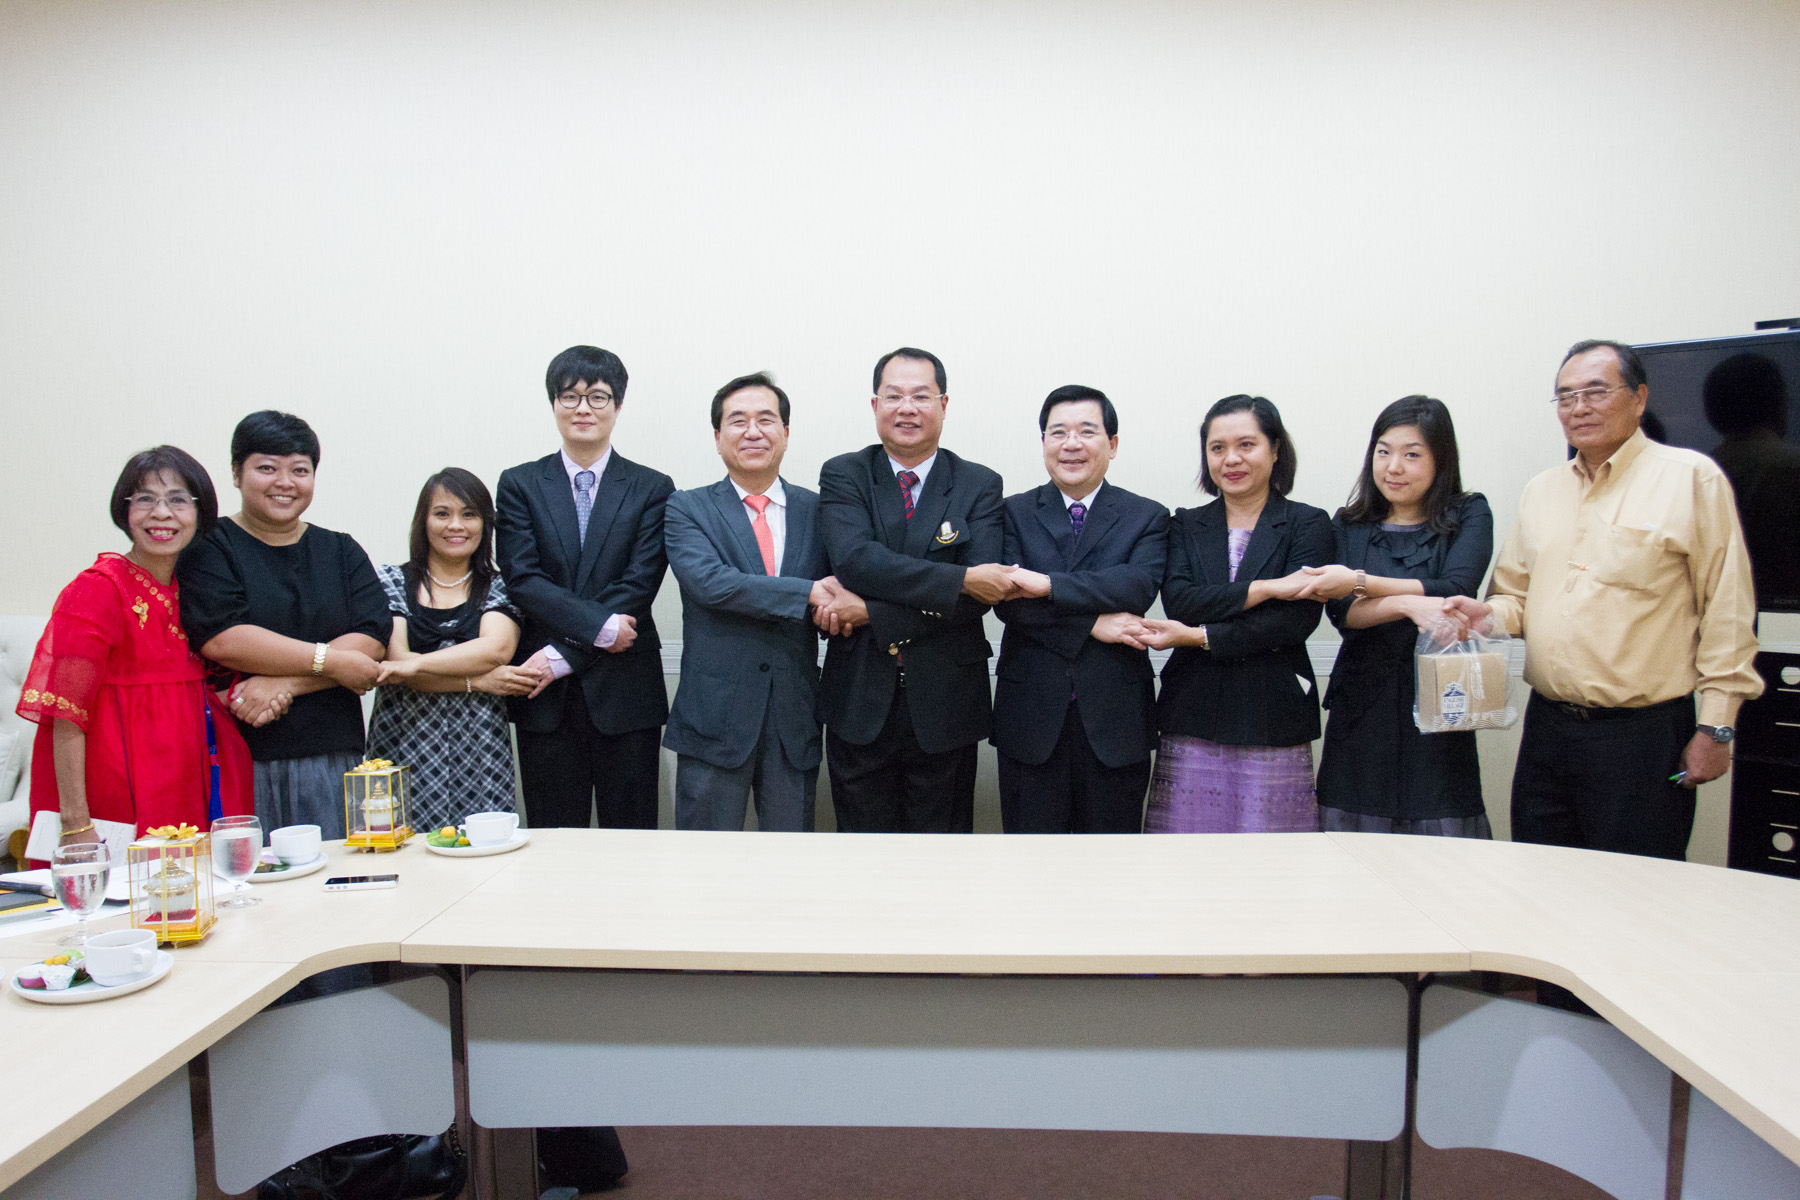 MSU Welcomed Delegates from Gyeonggi English Village, Paju South Korea